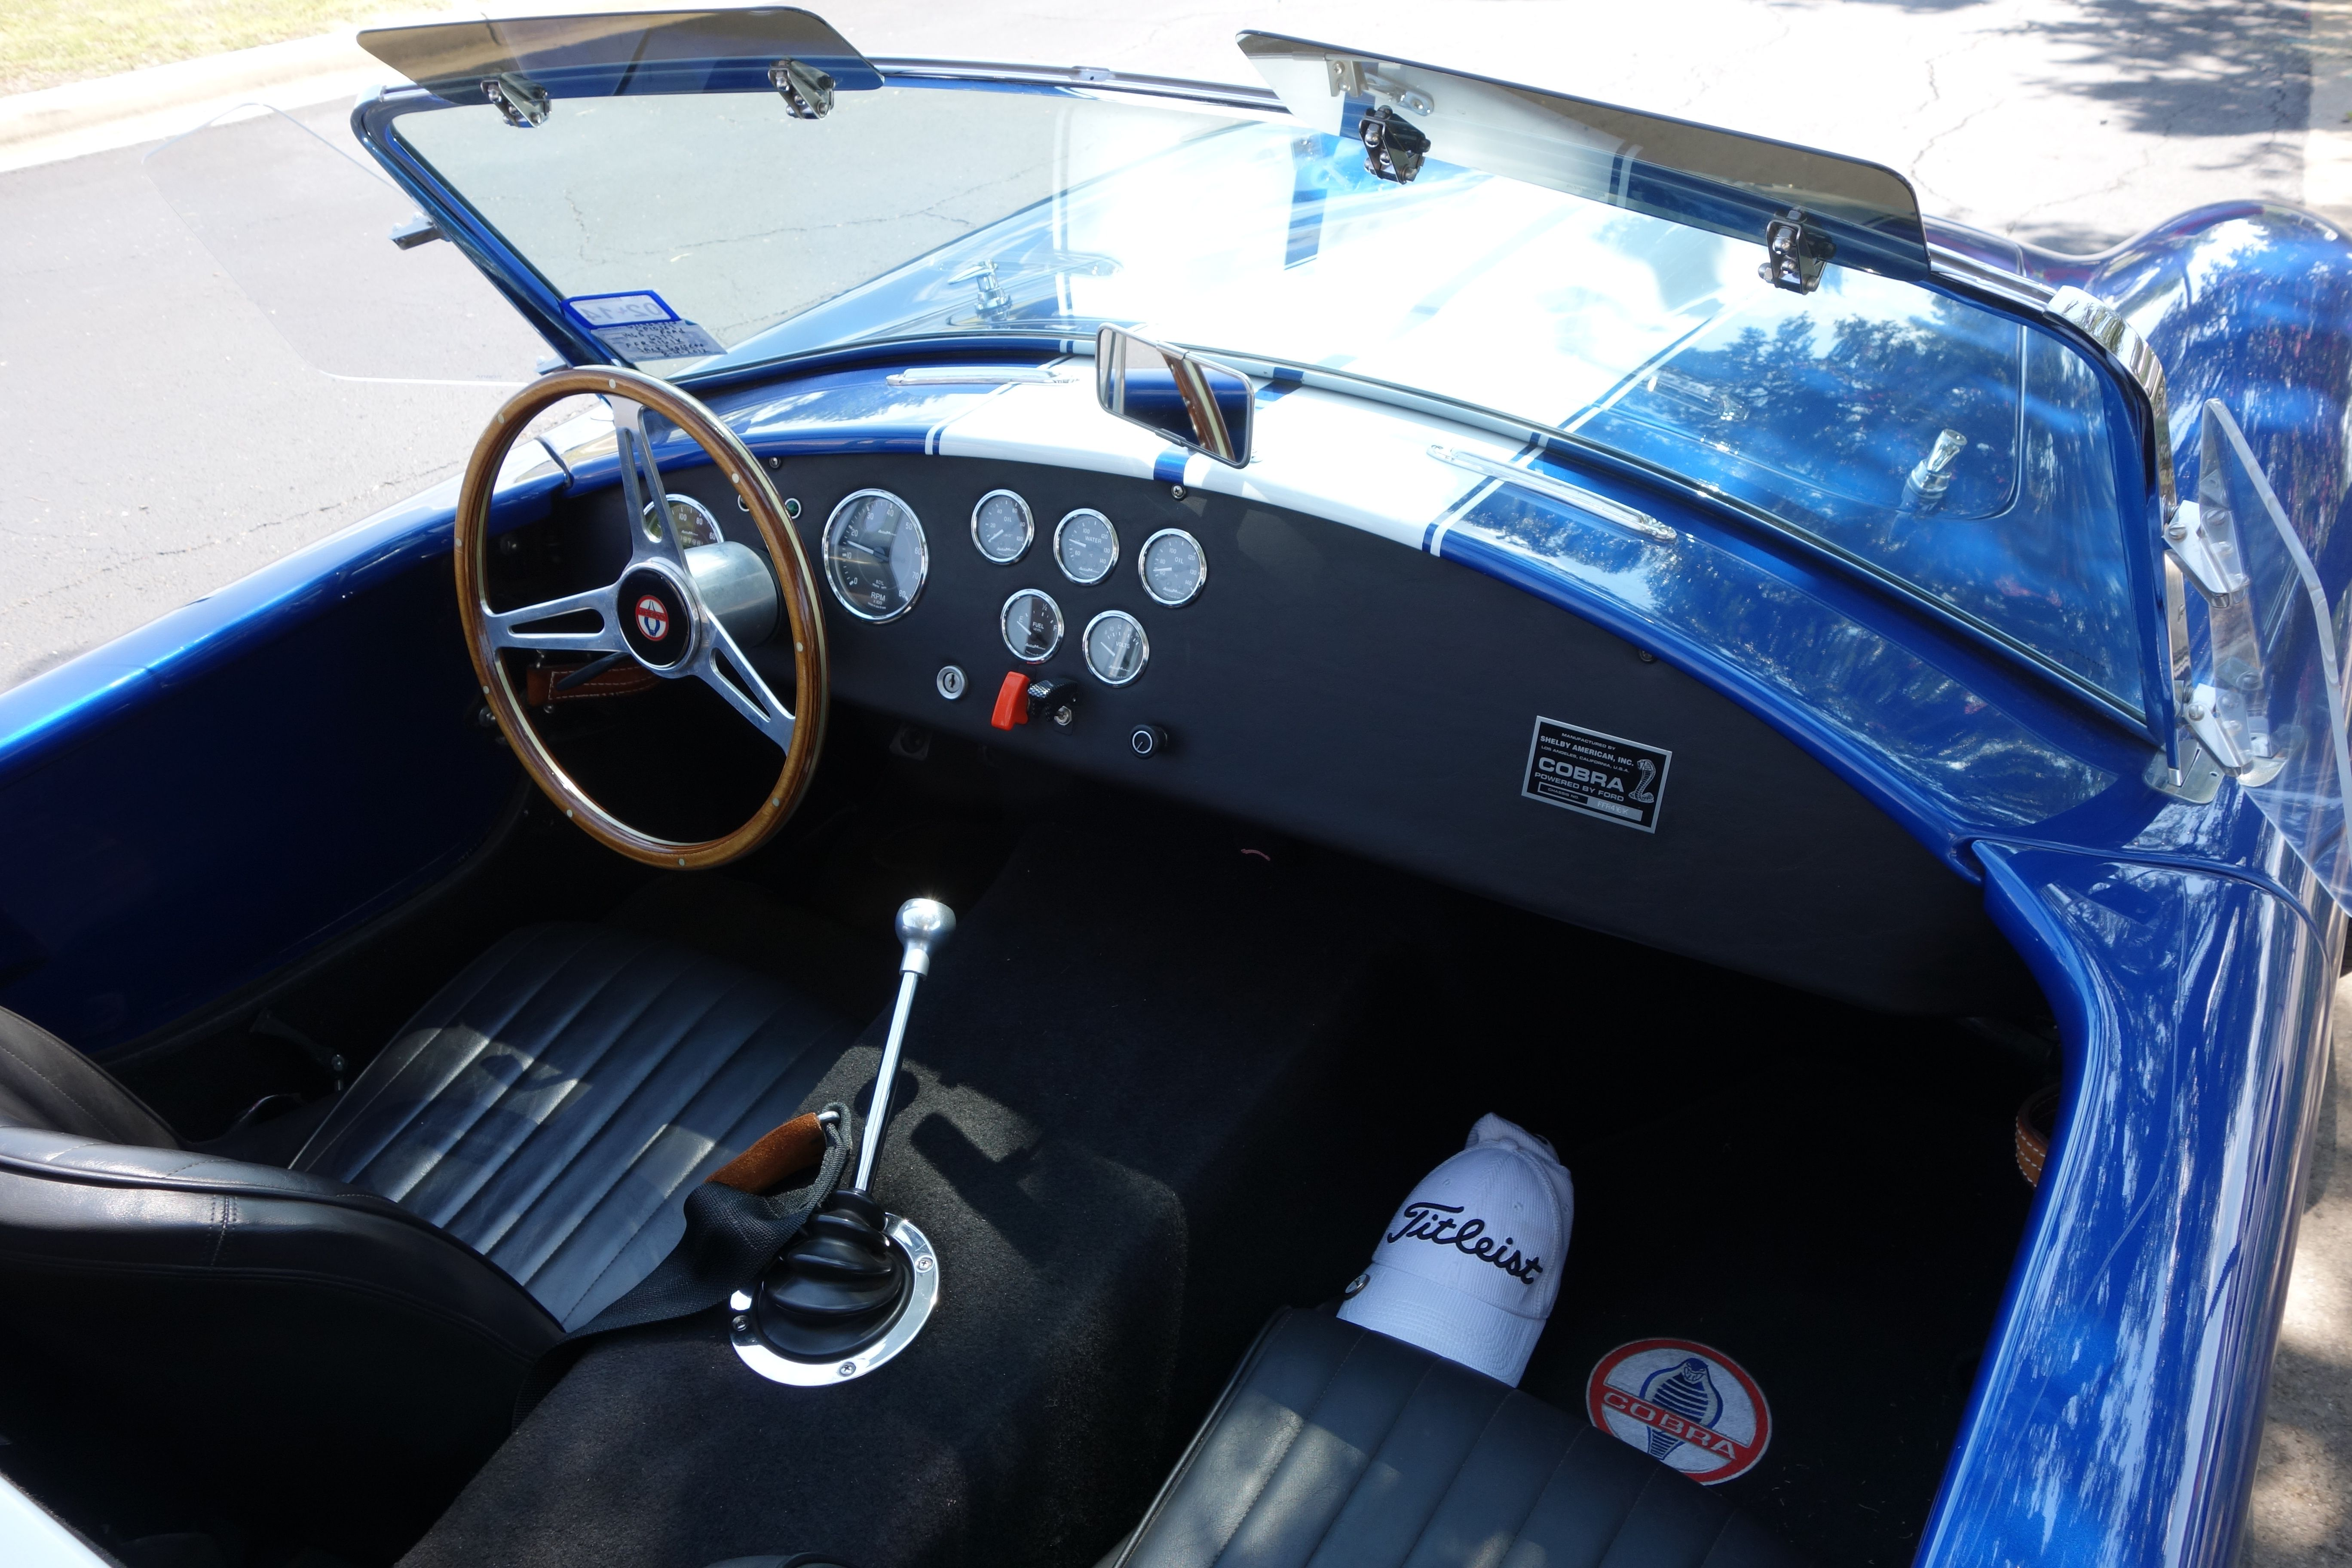 Cockpit view of shelby cobra